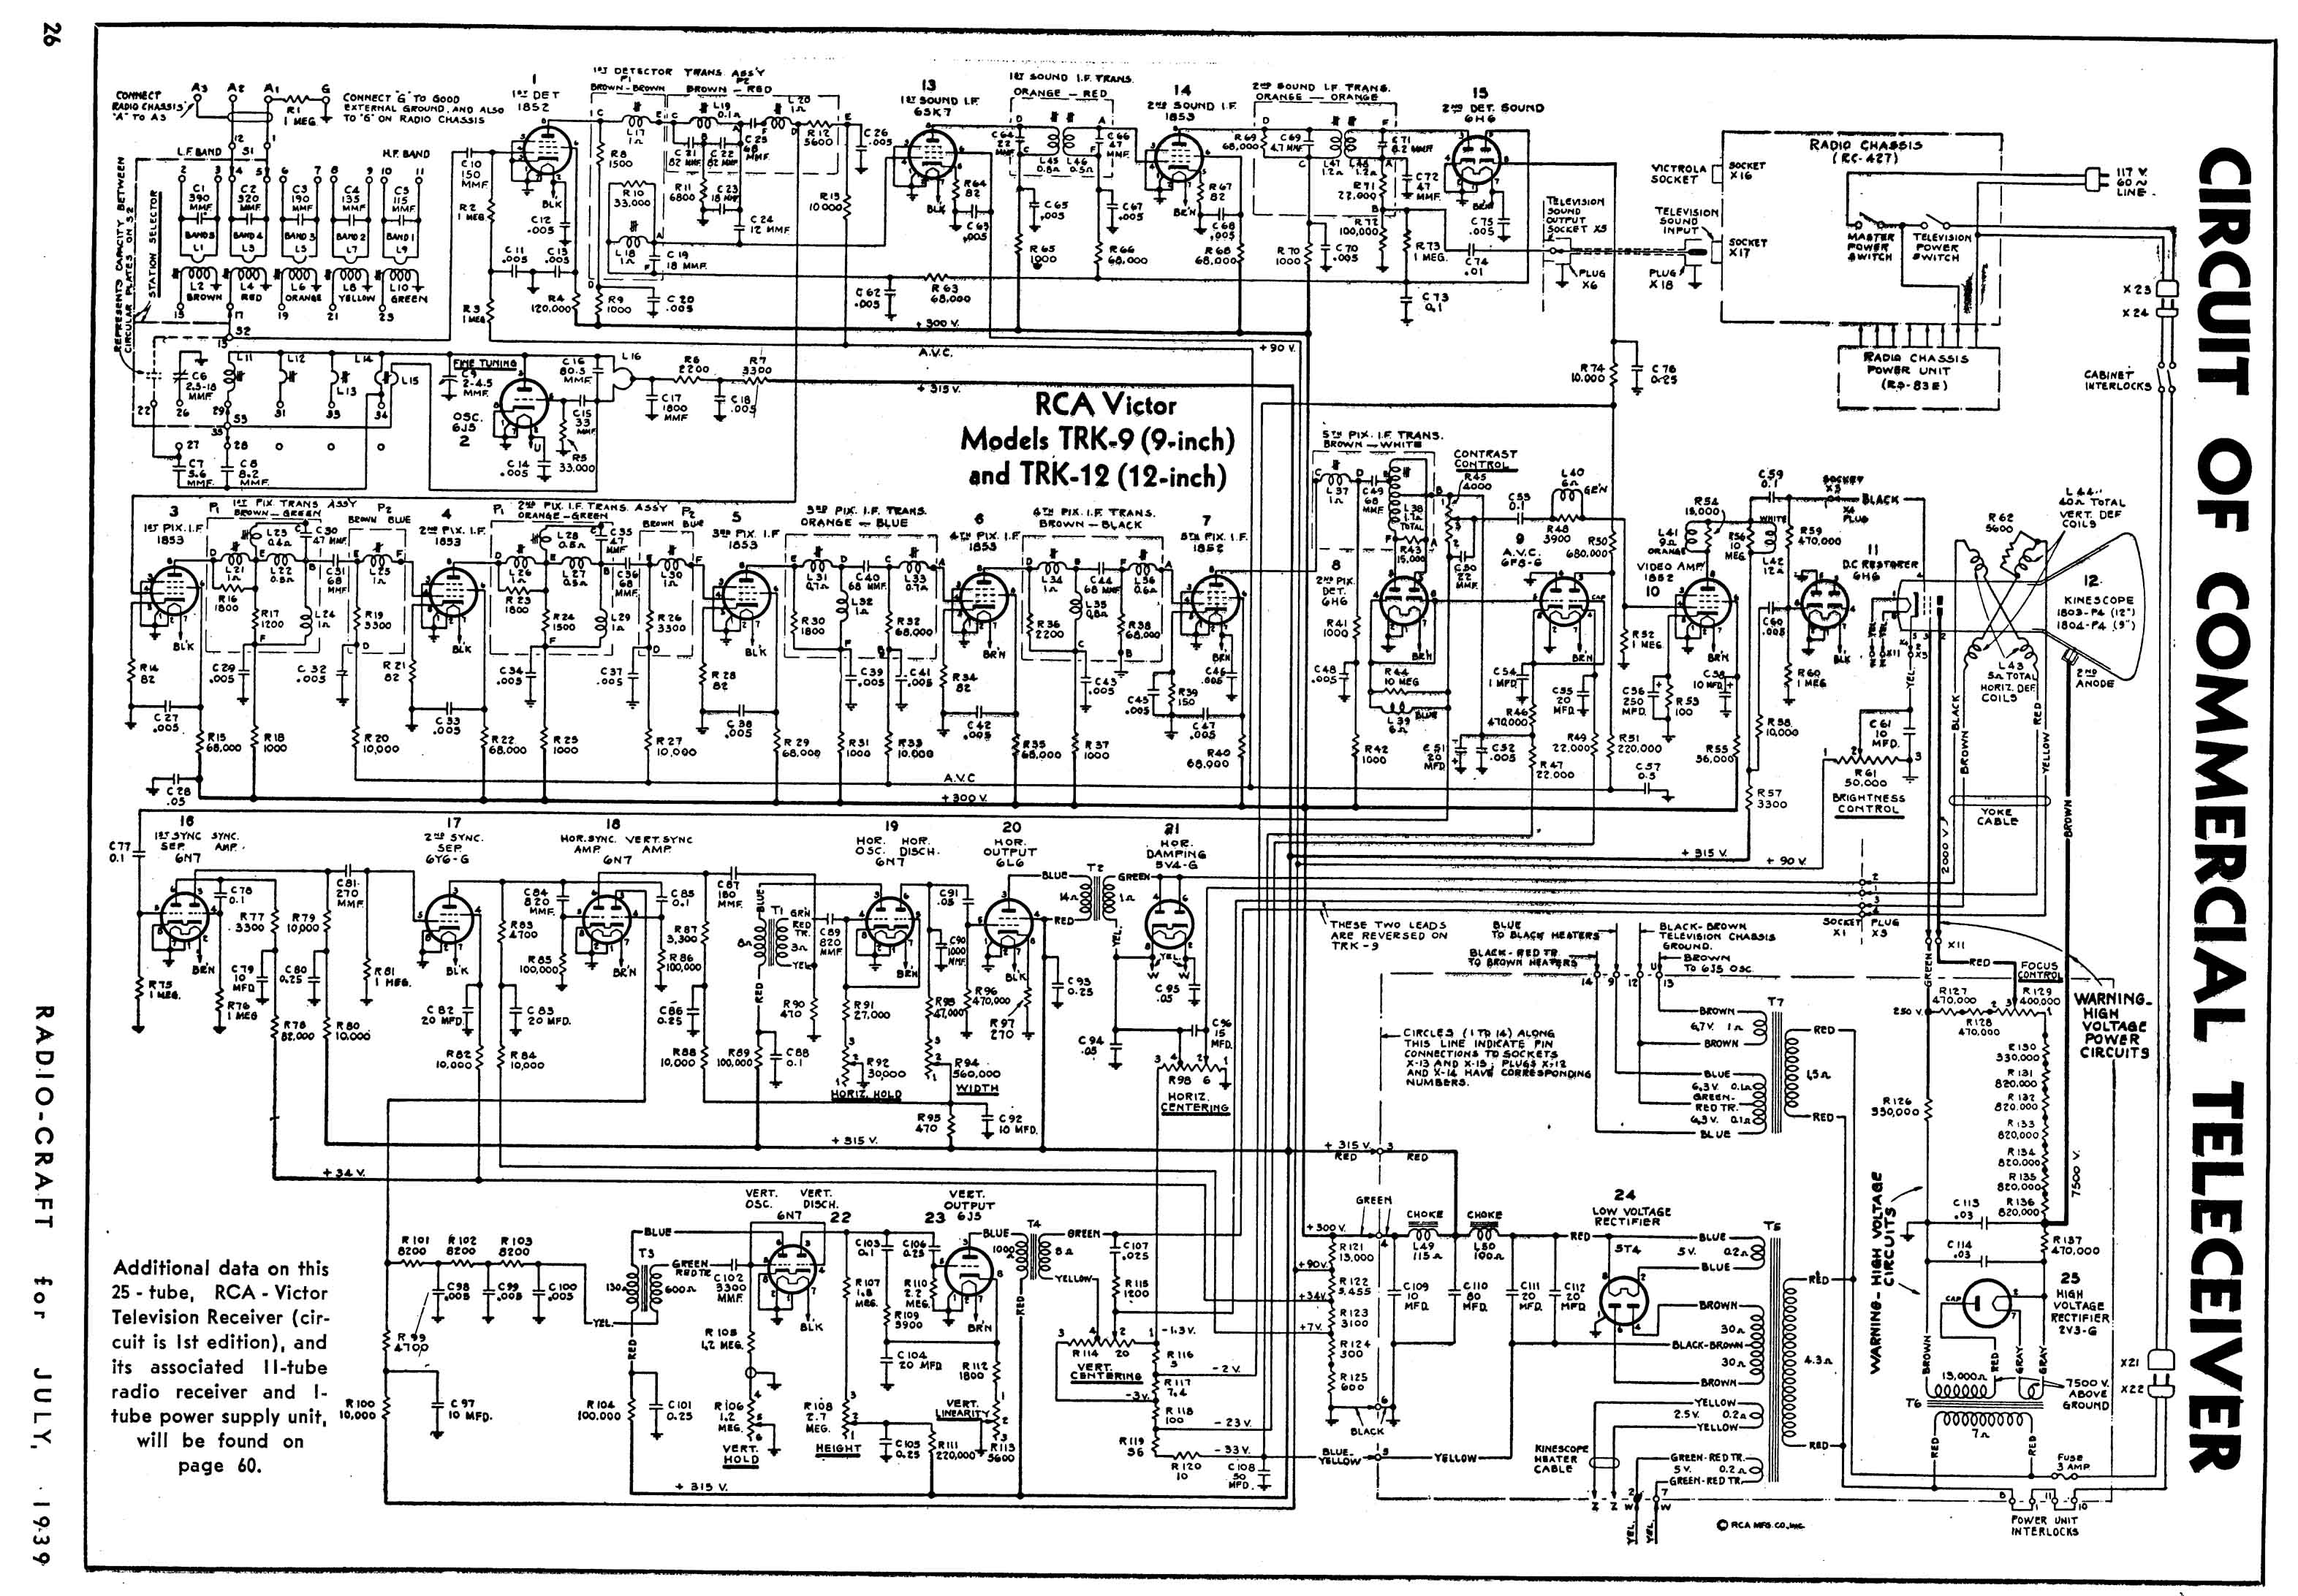 t v circuit diagram free download manual e books Electronic Circuit Diagram Software Free tv circuit diagram wiring diagramsimple circuit diagram tv data wiring diagram today lg slim tv circuit